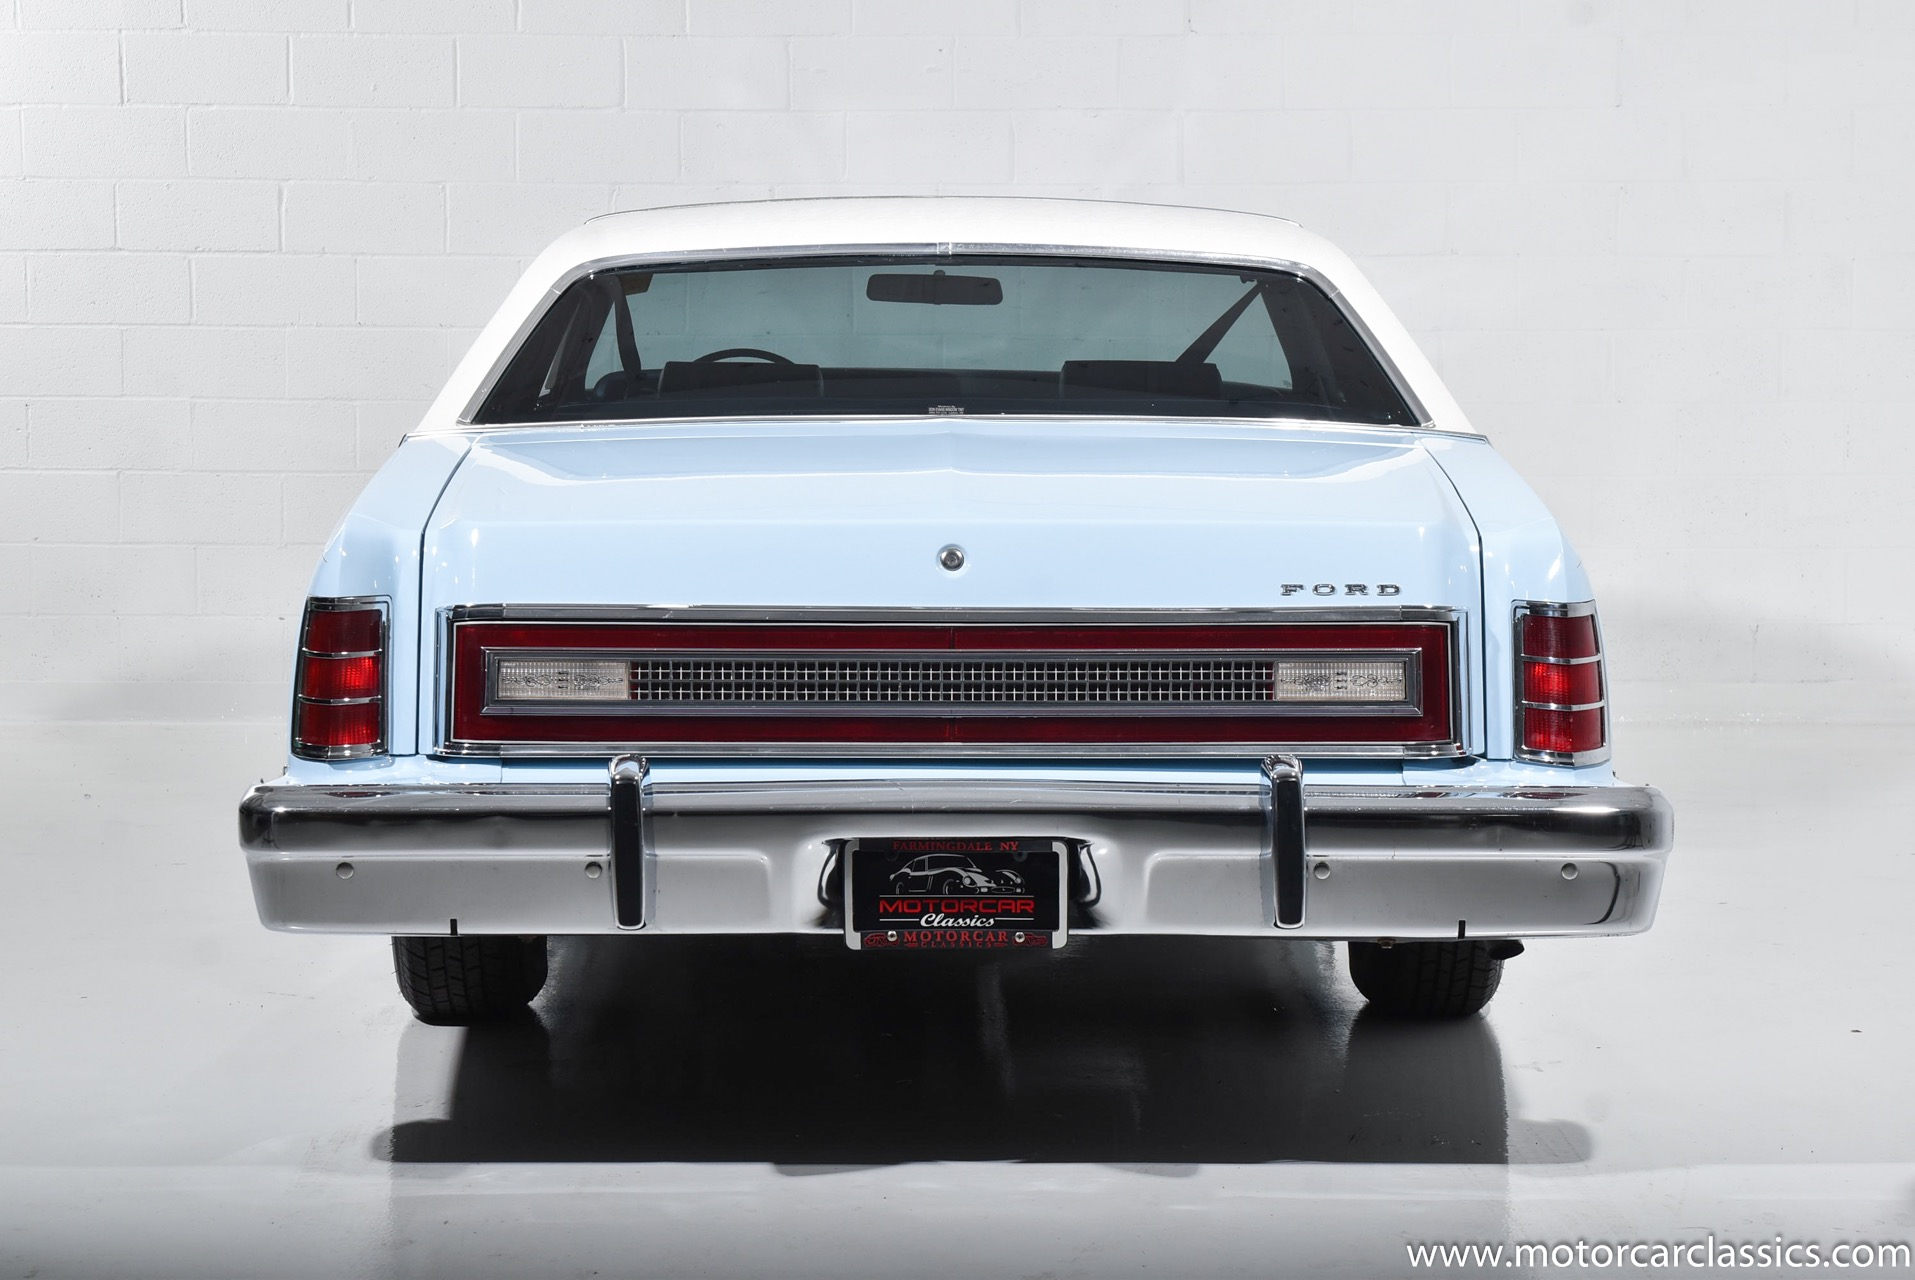 1977 Ford Galaxie LTD Landau